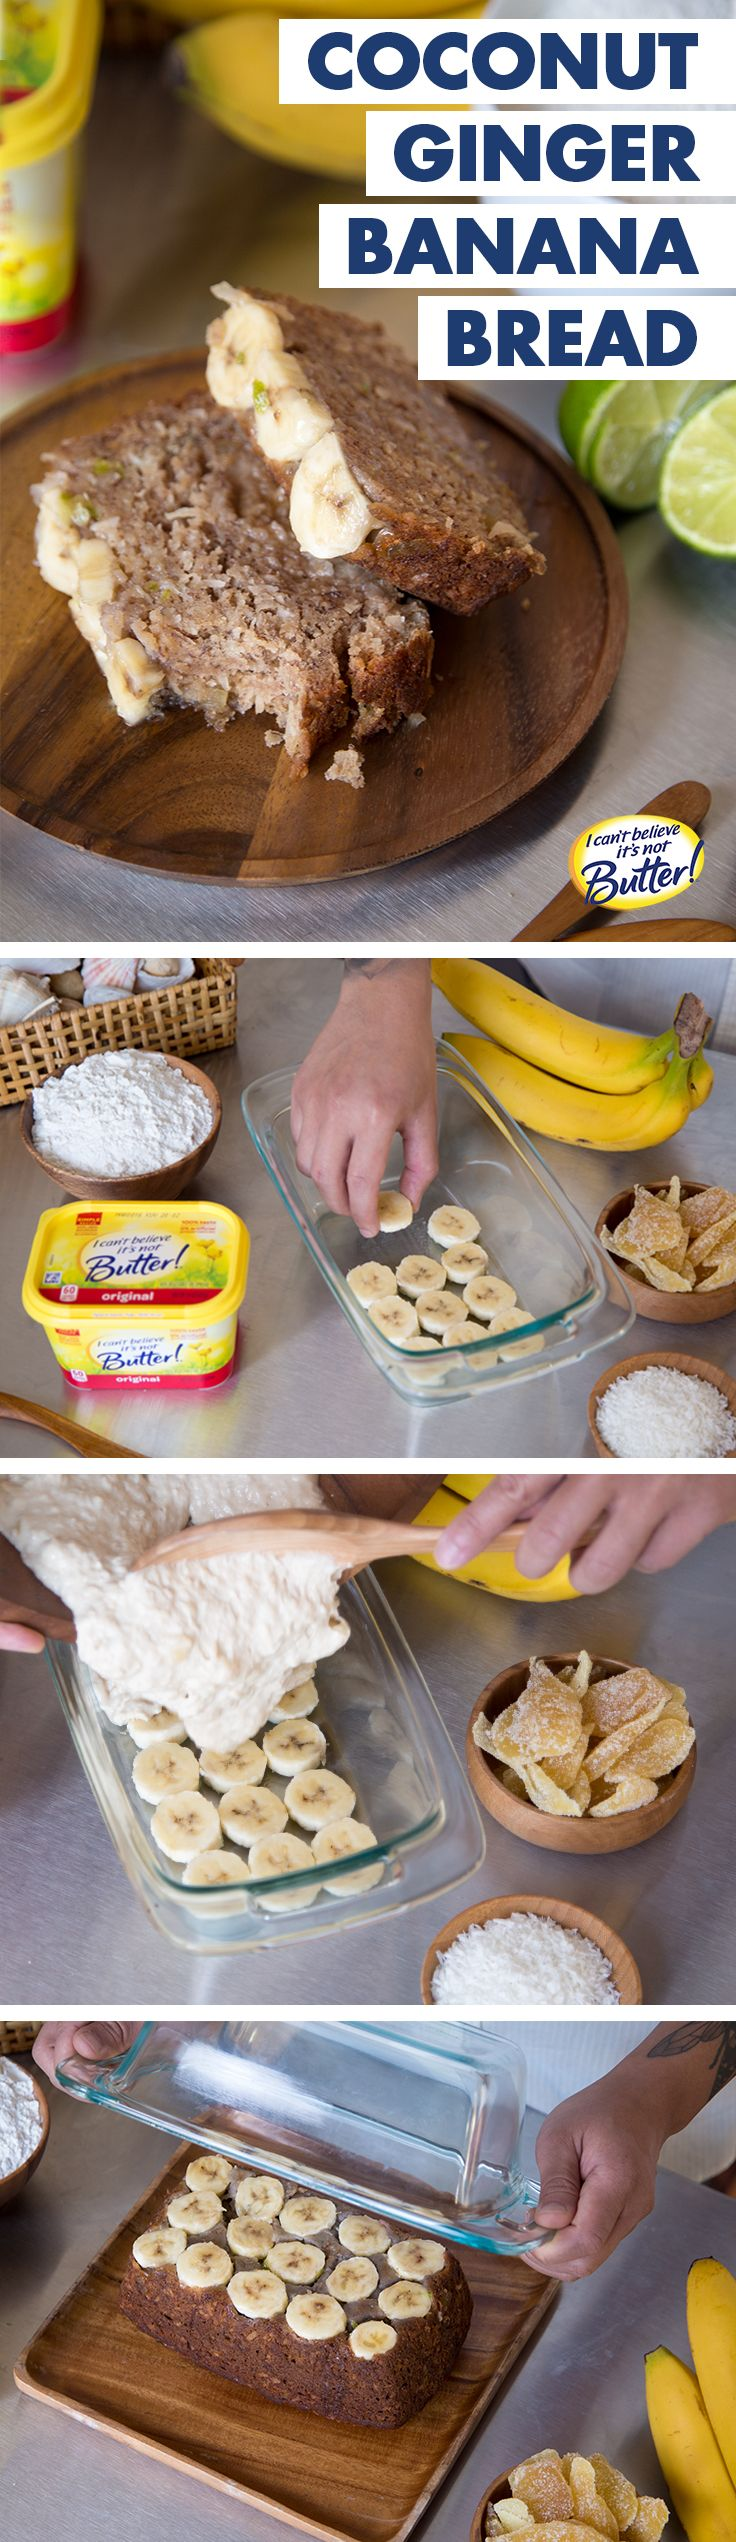 When the weather outside is frightful, this tropical Coconut Ginger Banana Bread is so delightful! With island-inspired flavors like shredded coconut & crystallized ginger, you'll take your tastebuds on vacation. Just follow our Best Ever Banana Bread recipe—using I Can't Believe It's Not Butter!® to make it more moist than baking w/ butter—& add your mix-ins. For a twist, line the pan w/ sliced bananas before you pour in the batter. Once the loaf cools, coat w/ lime glaze—banana-side-up!